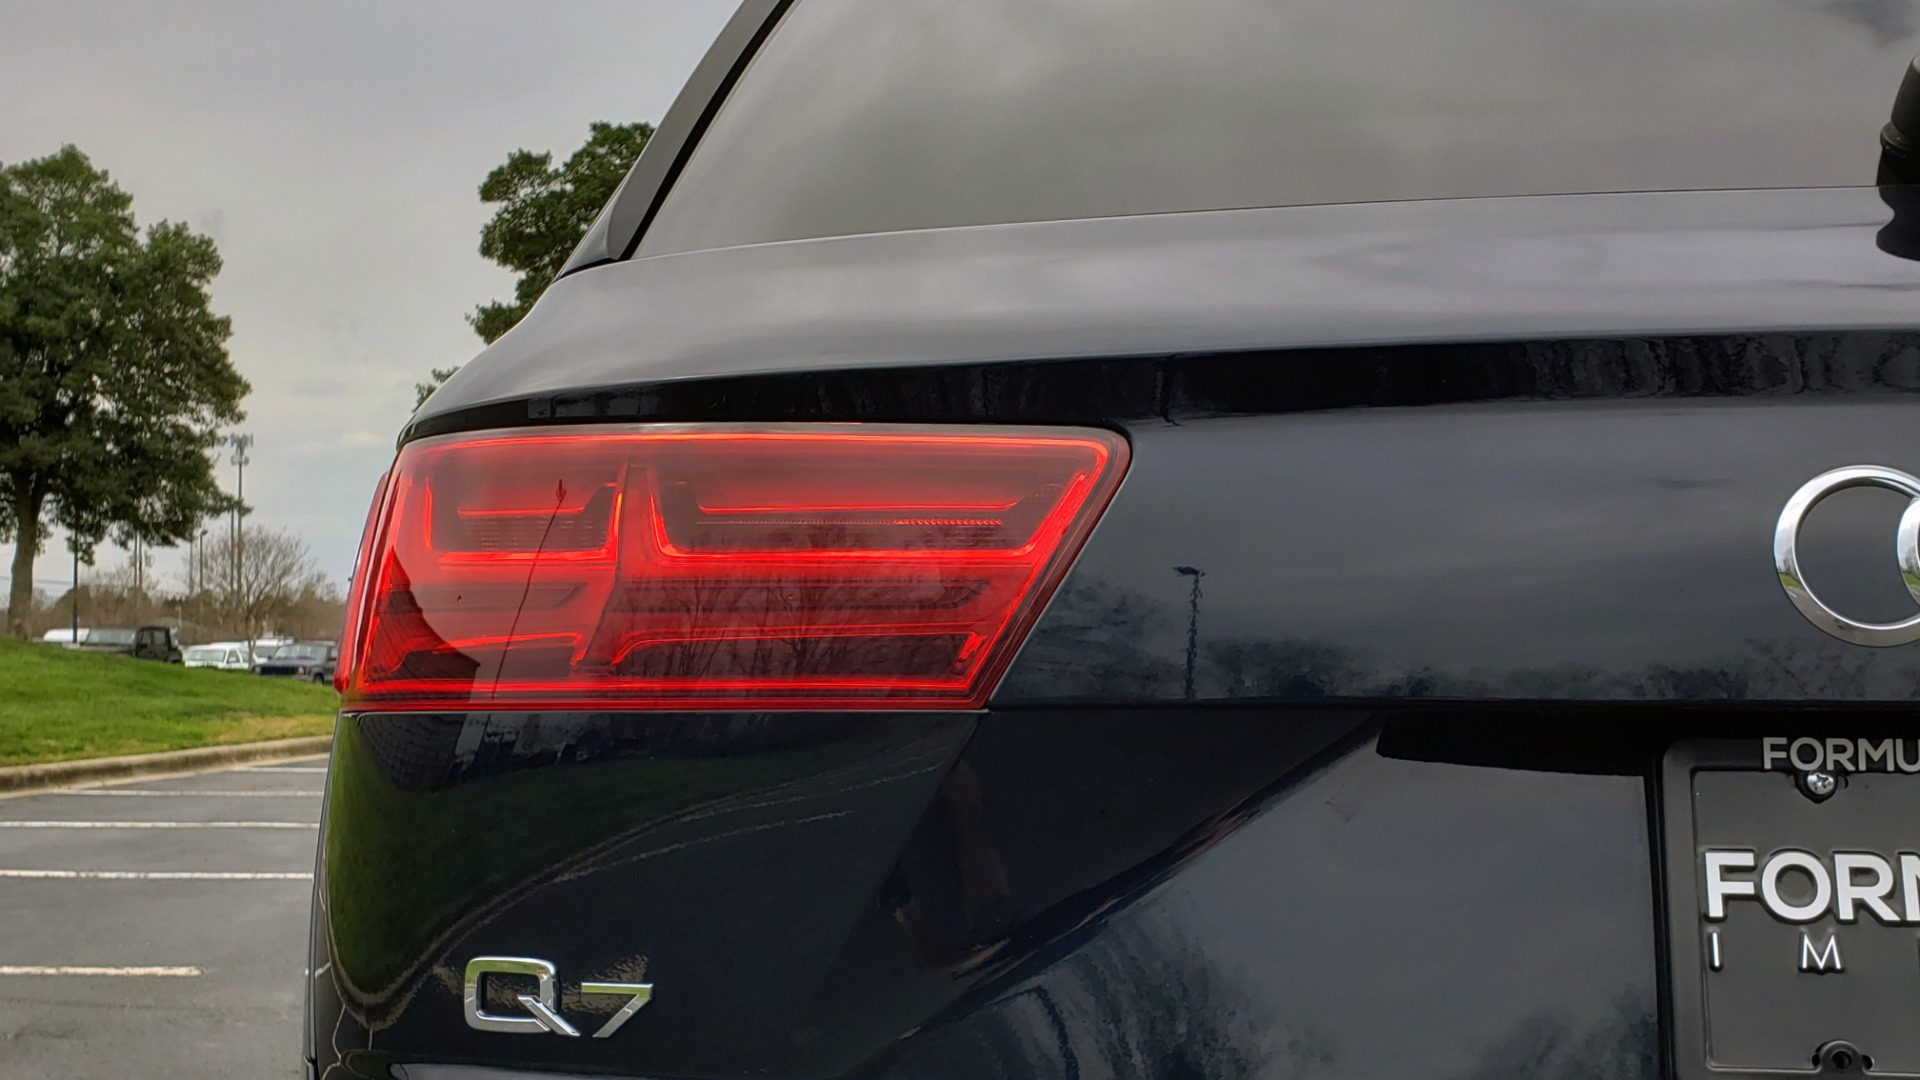 Used 2017 Audi Q7 PRESTIGE 3.0T / AWD / NAV / PANO-ROOF / HTD STS / BOSE / VISION for sale Sold at Formula Imports in Charlotte NC 28227 27